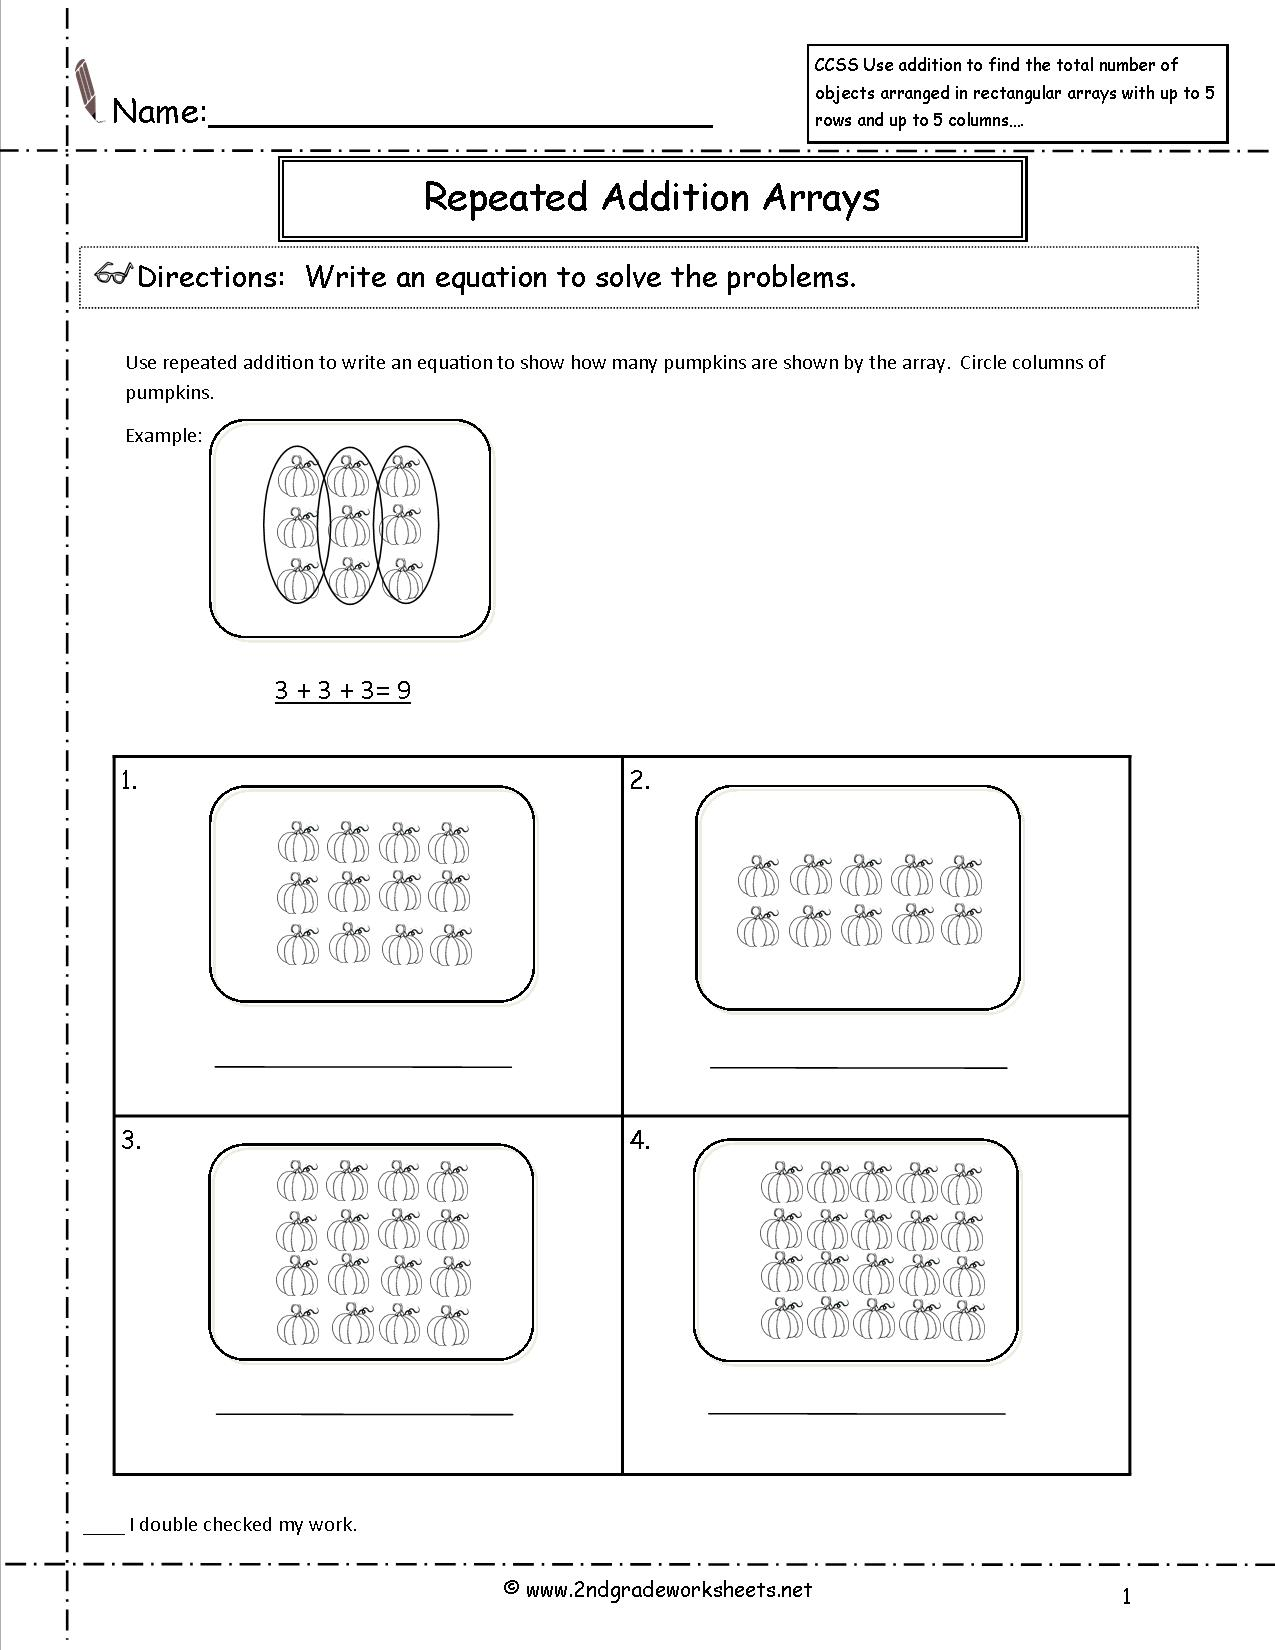 16 Best Images Of 2nd Grade Arrays Repeated Addition